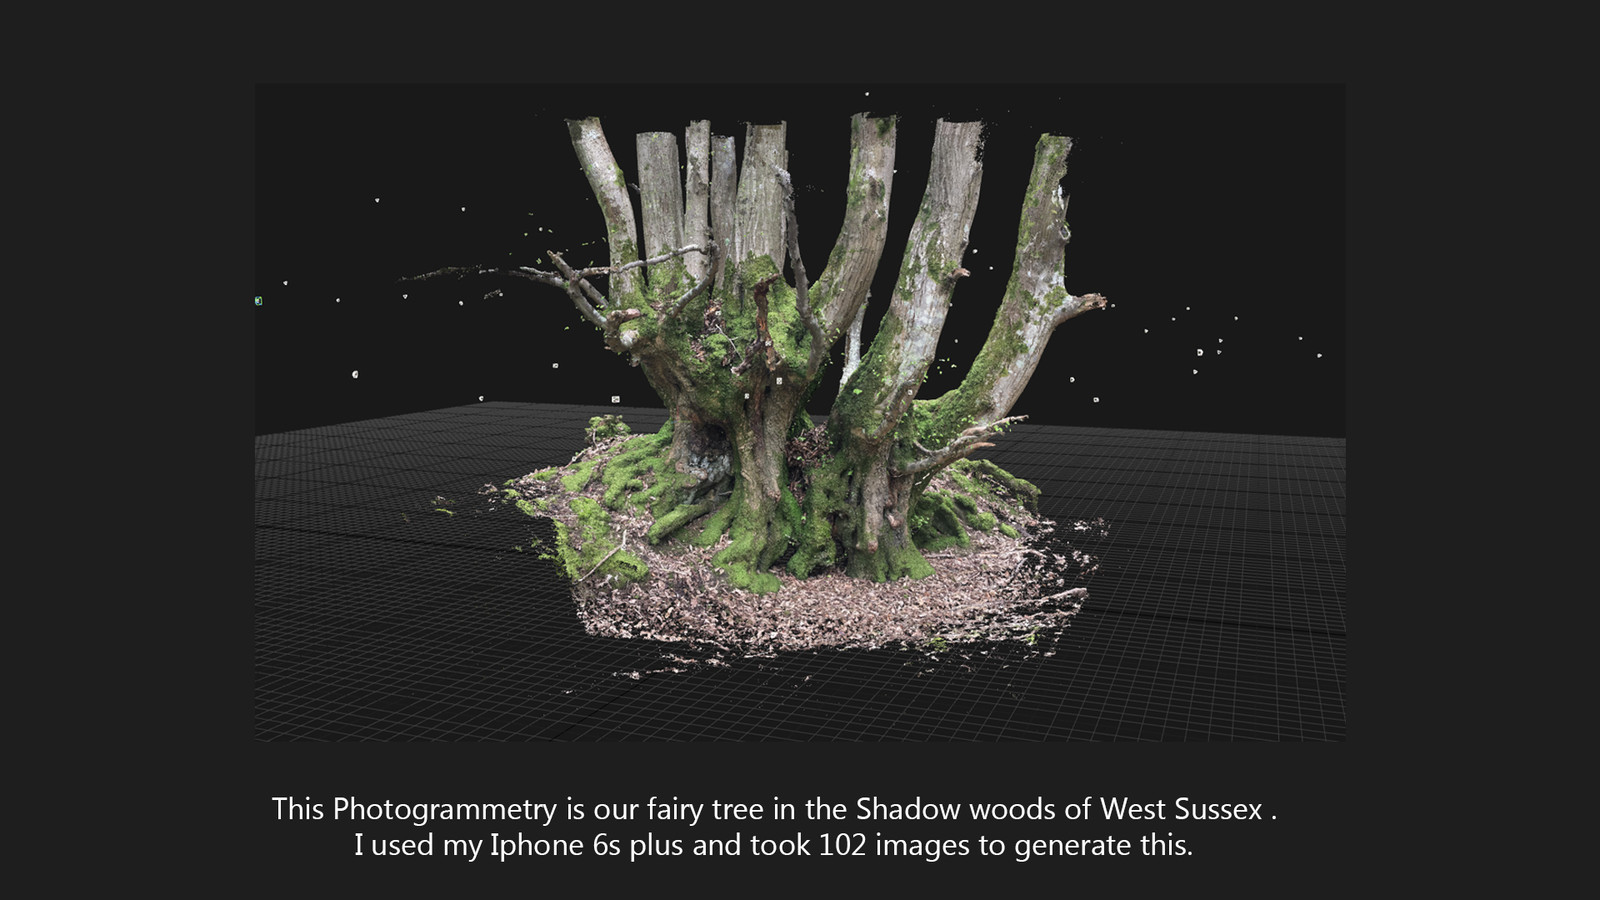 Fairy Tree shadow woods